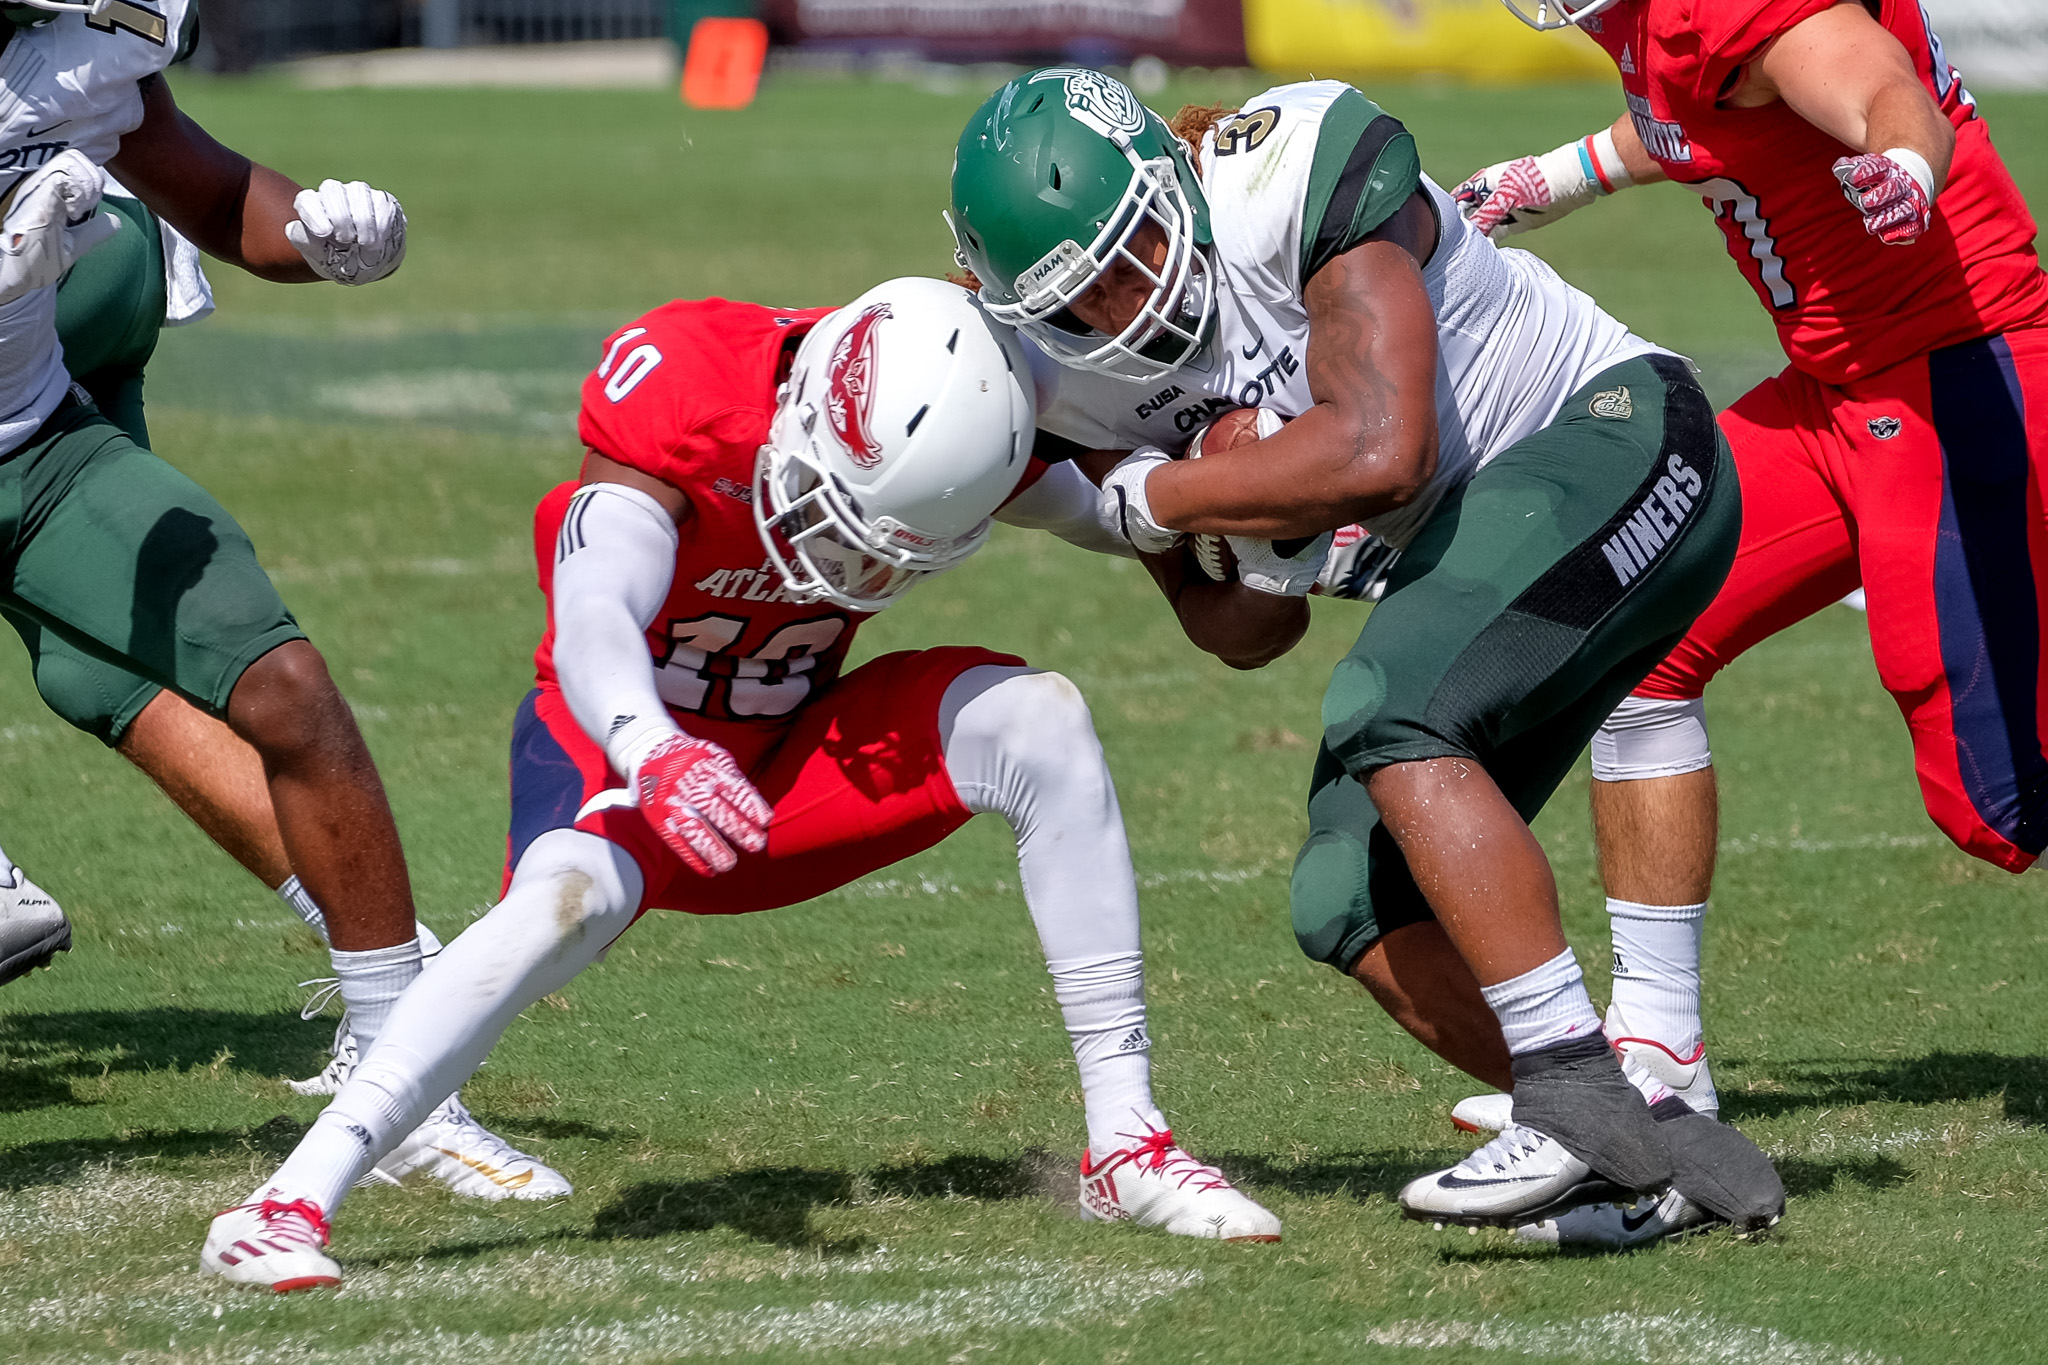 FAU sophomore cornerback Herb Miller (10) tackles 49ers running back Kalif Phillips (3).